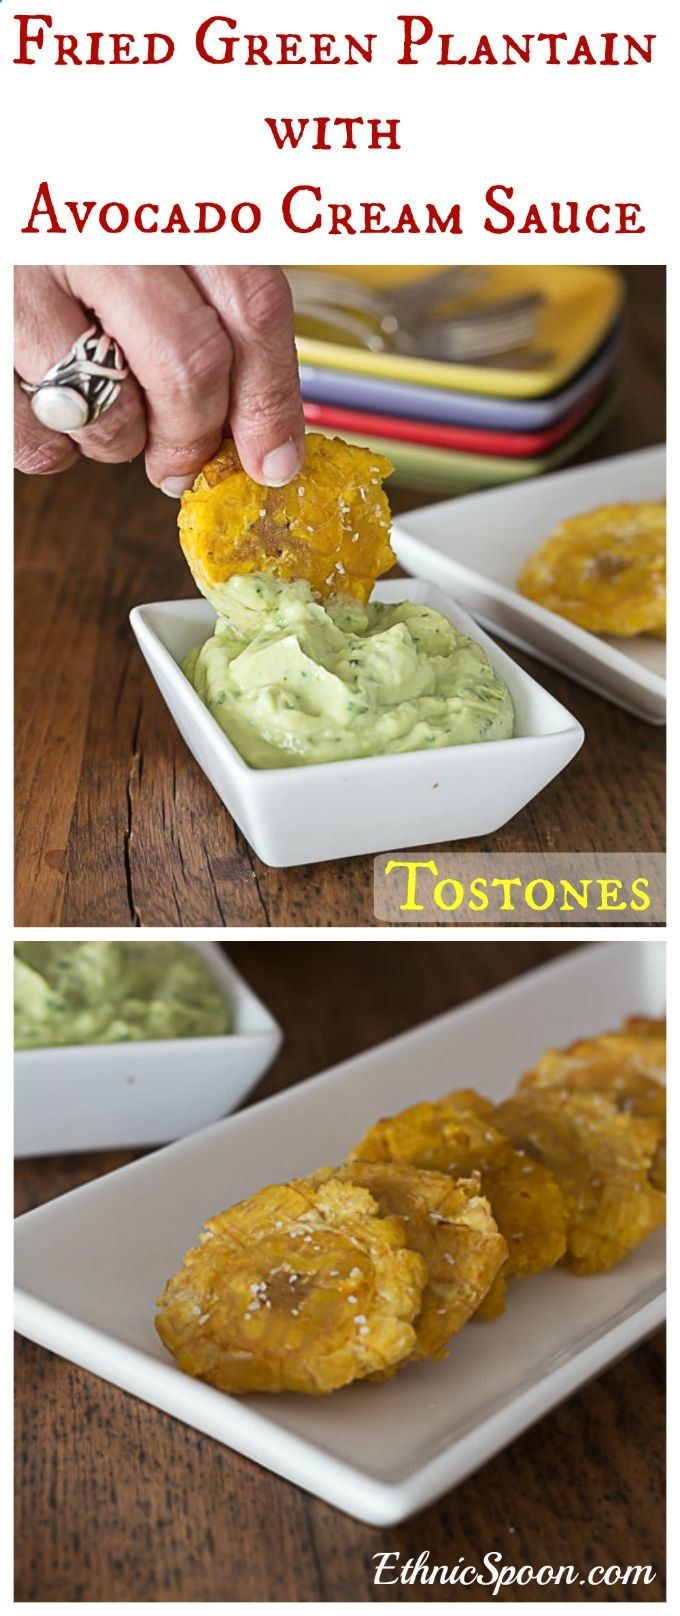 Fried green plantain or tostones with an avocado cream sauce. | ethnicspoon.com